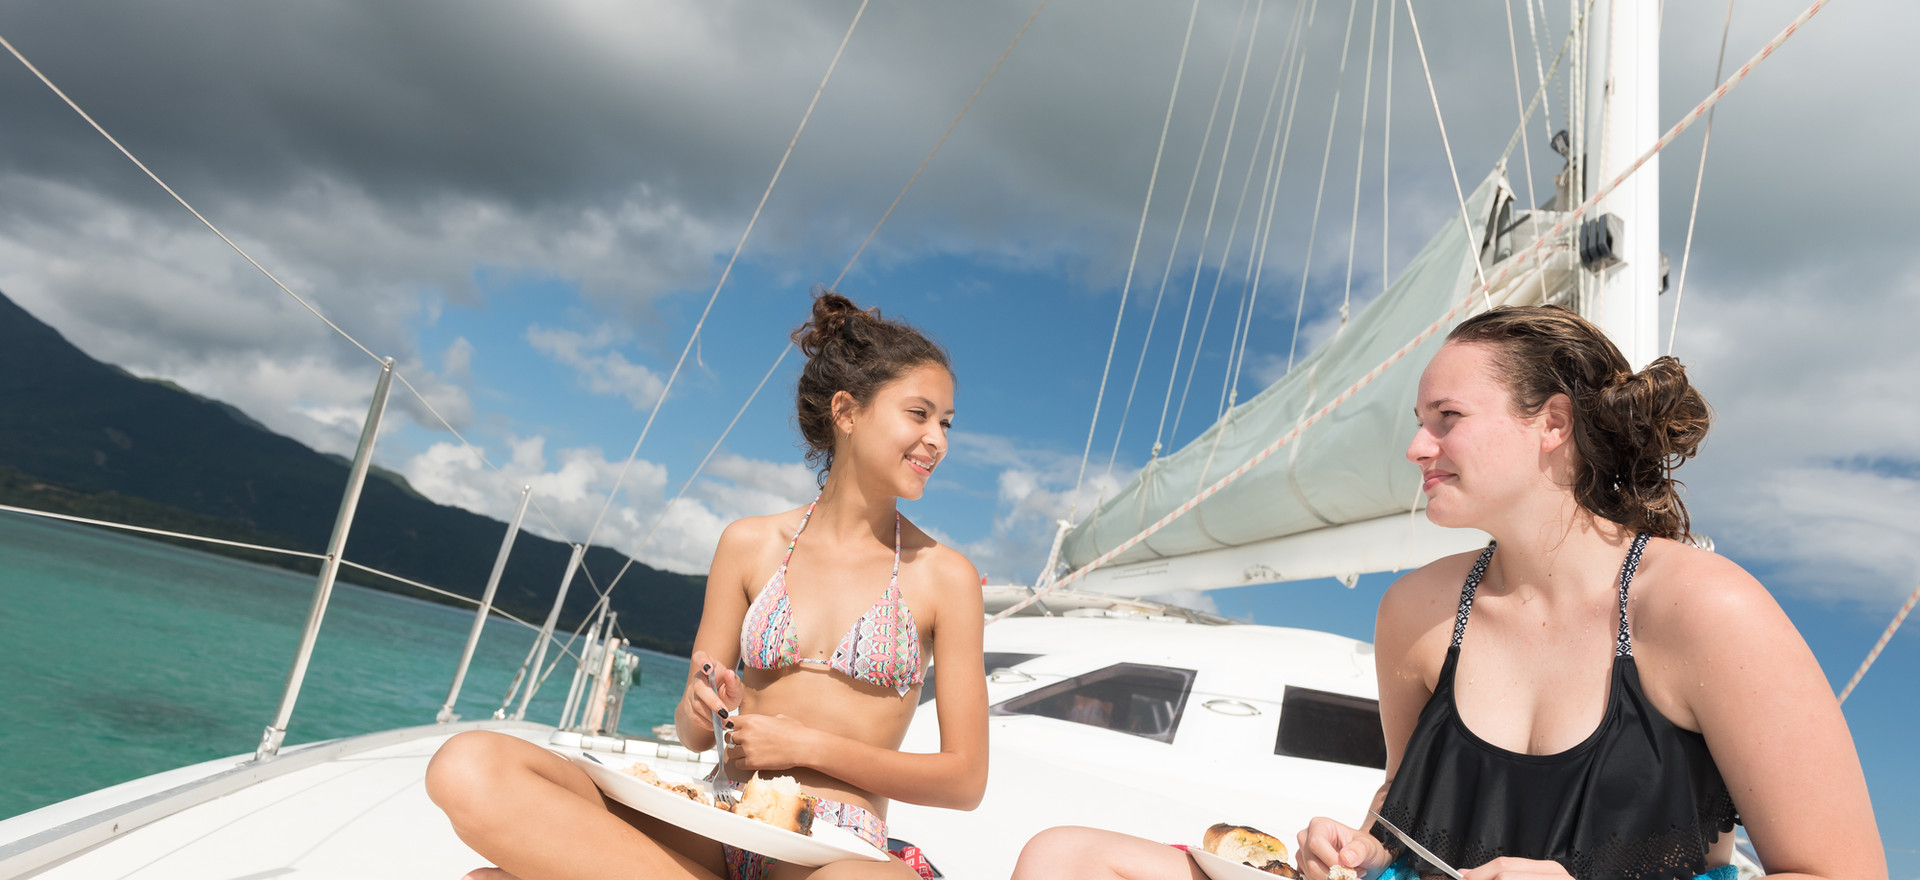 Lunch on Sunset Cruiser